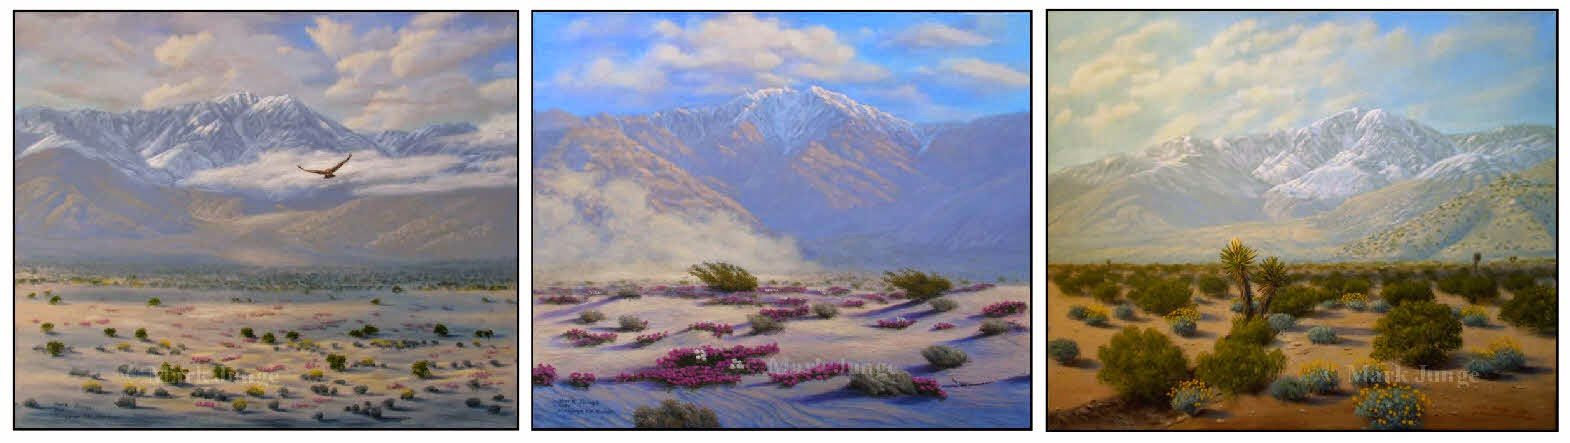 Mt. San Jacinto,Palm Springs,hawk,sand dunes,art